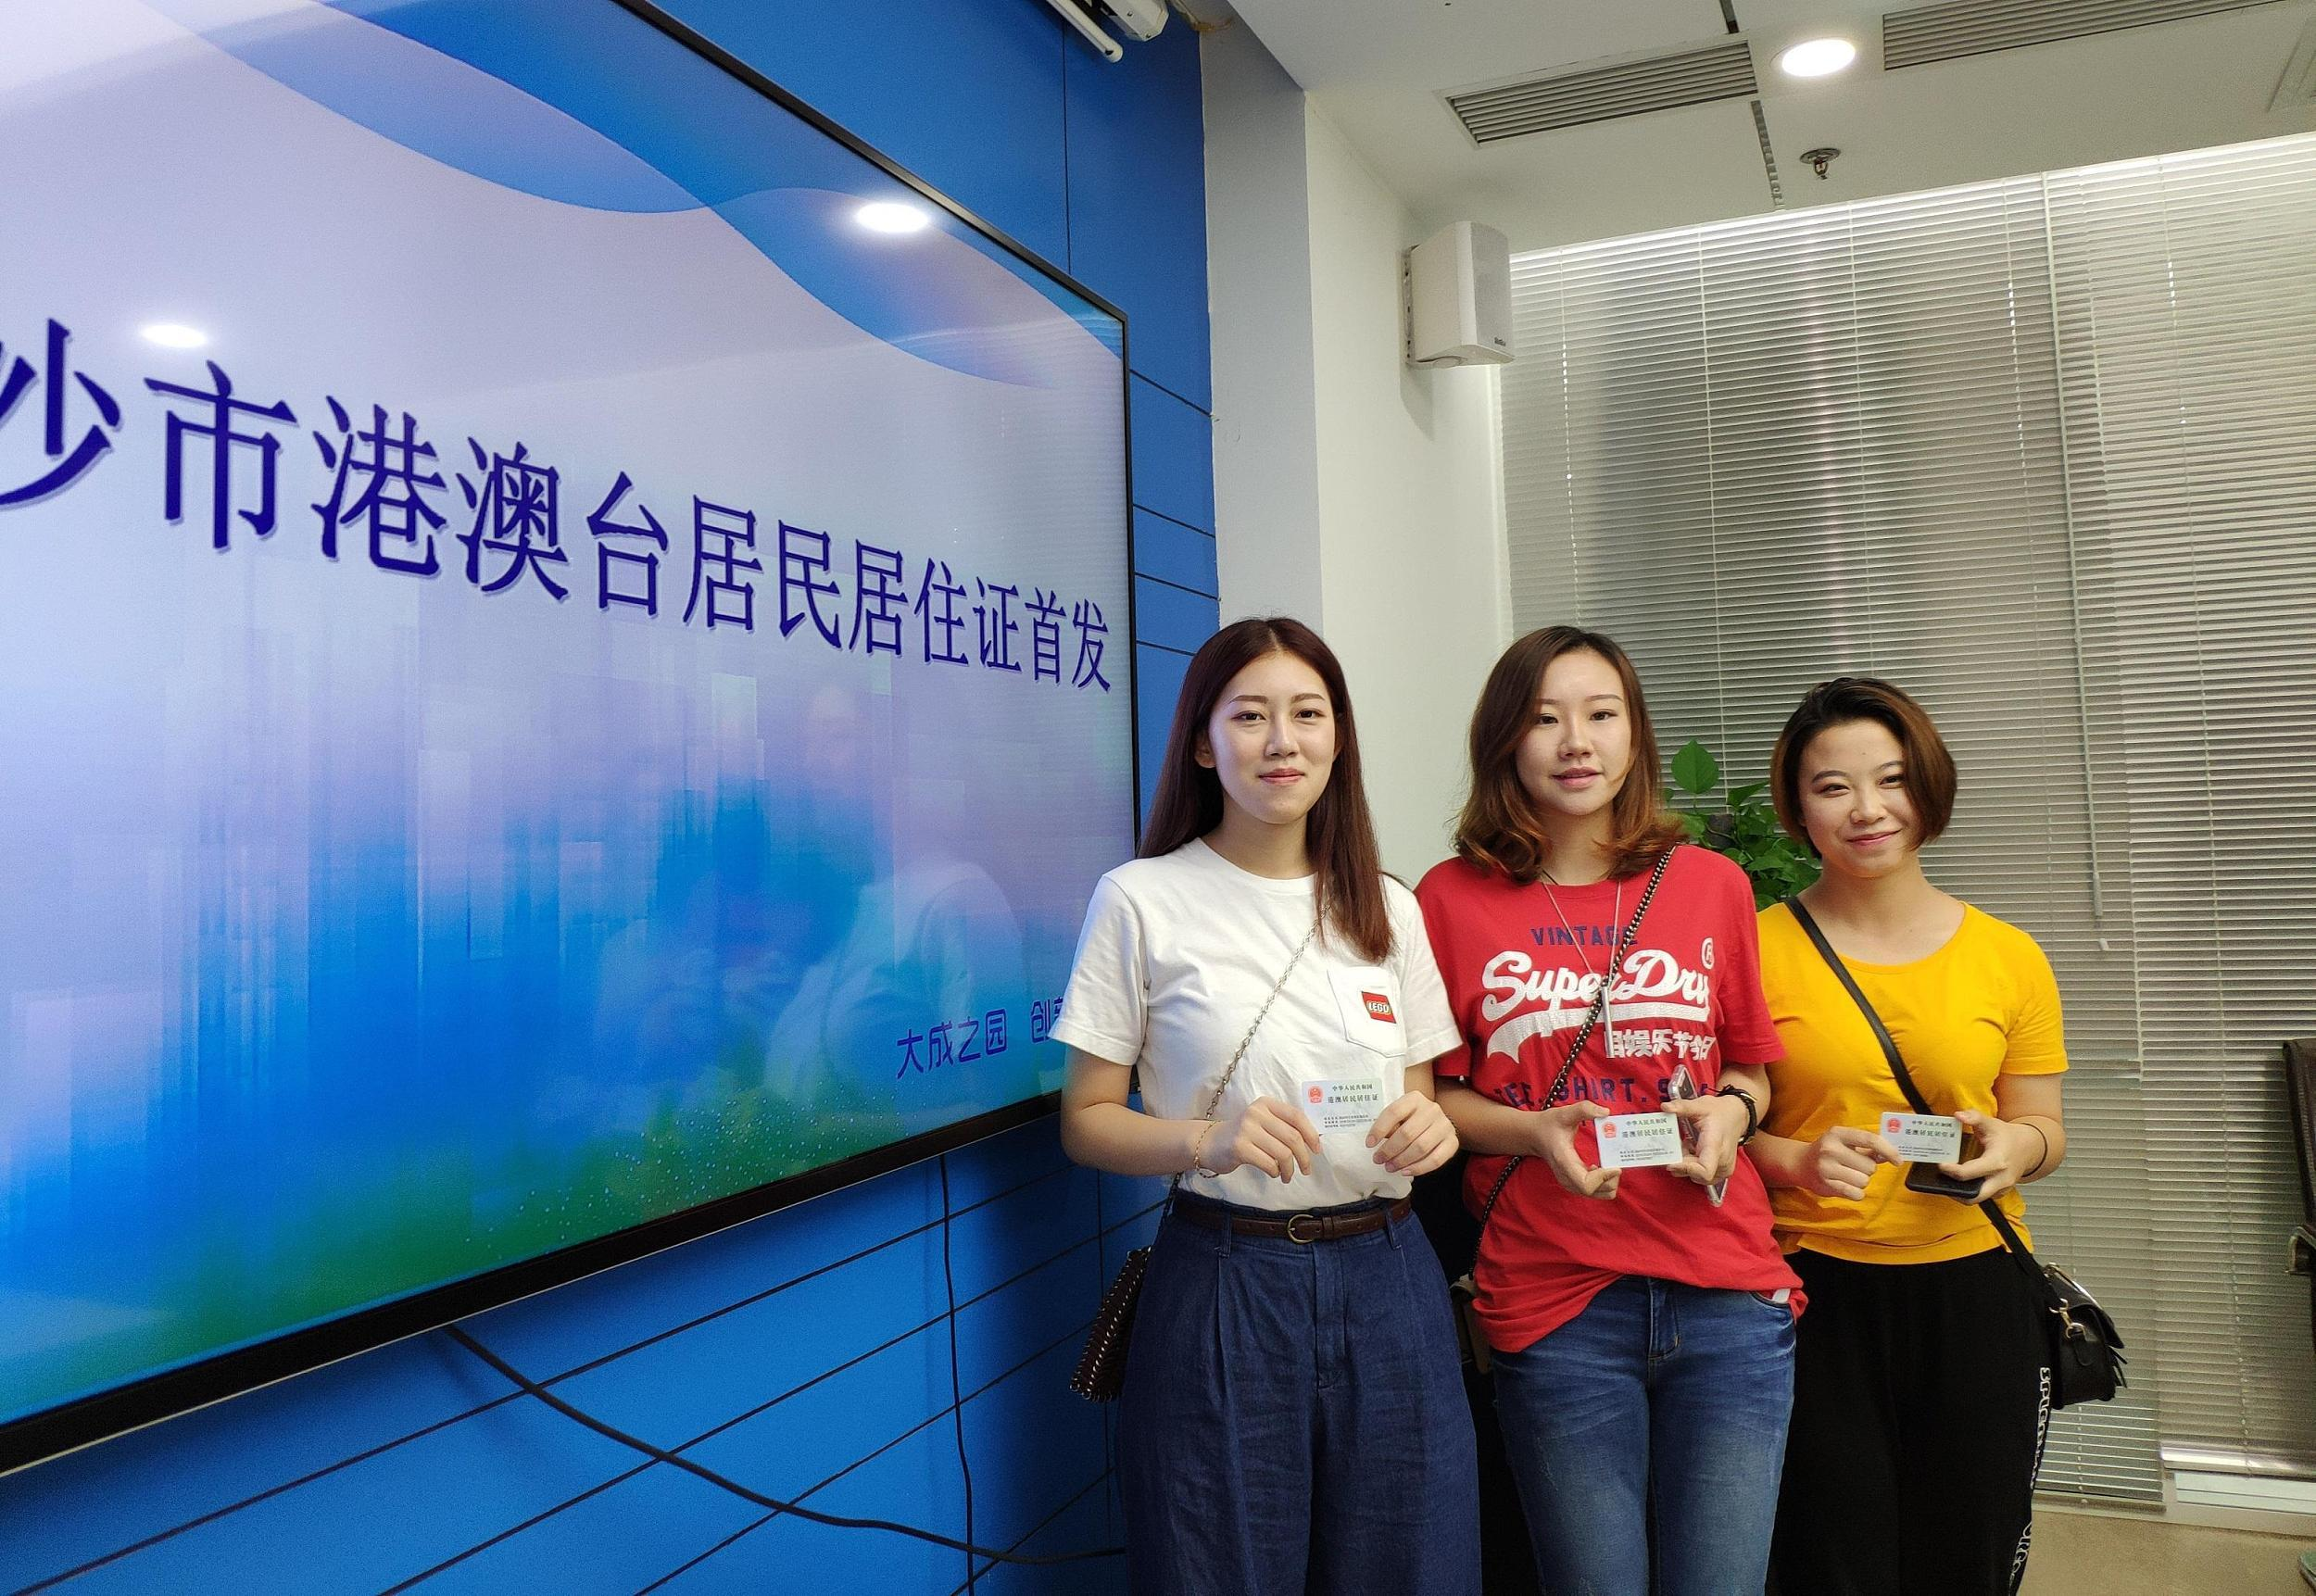 Hong Kong, Macao residents can apply for travel permits on mainland